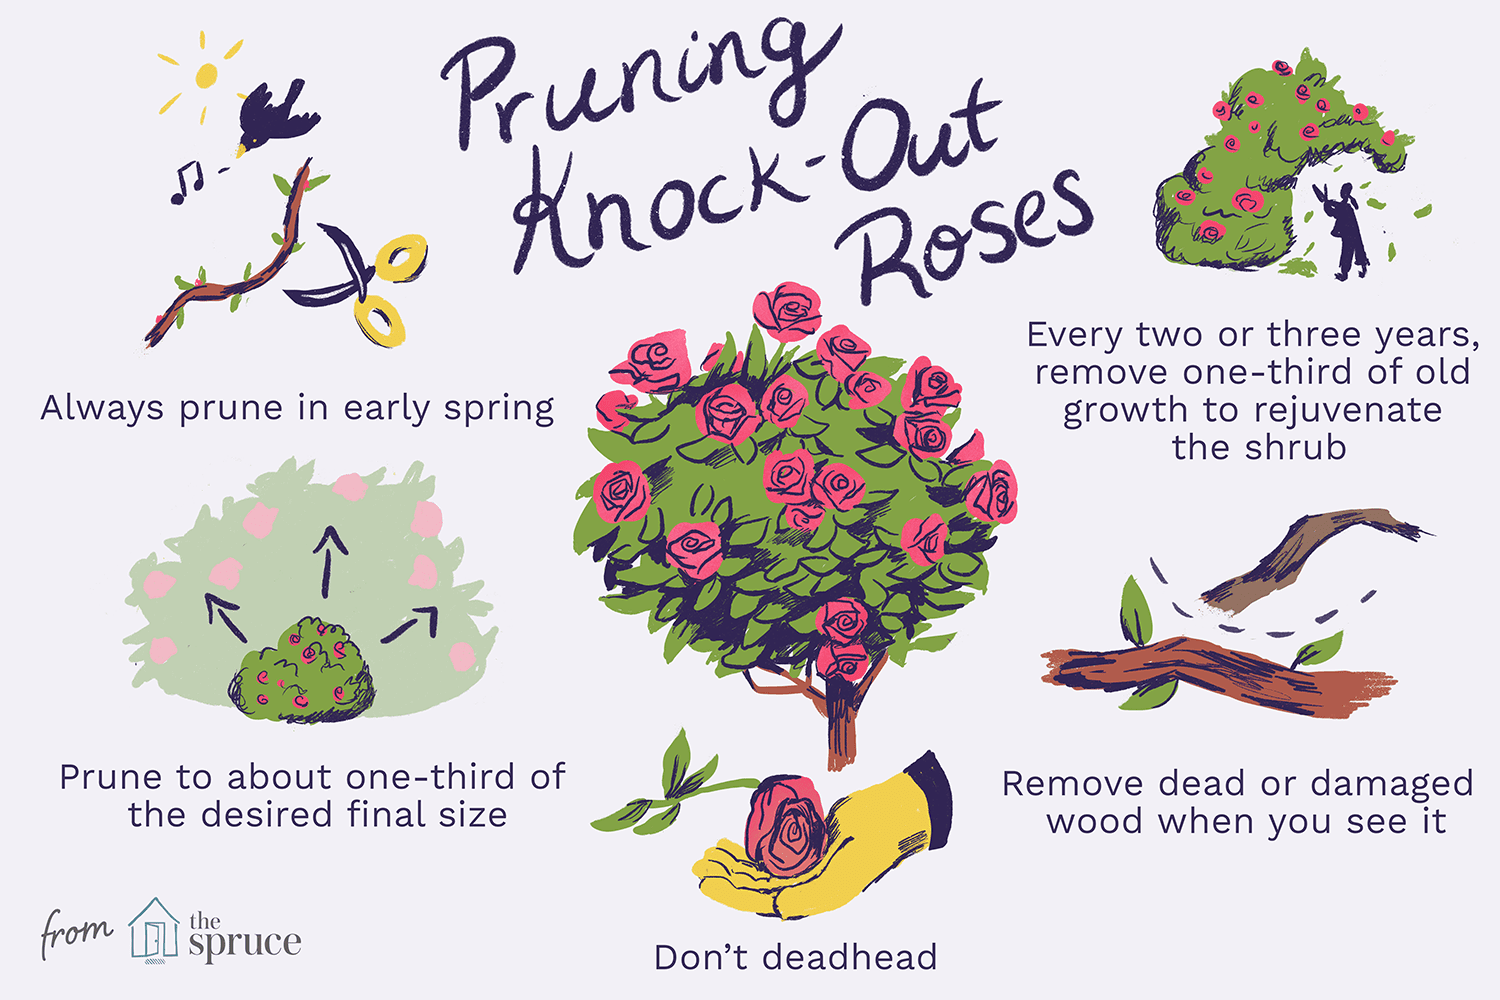 How To Prune Shrub Roses And Knock Out Roses